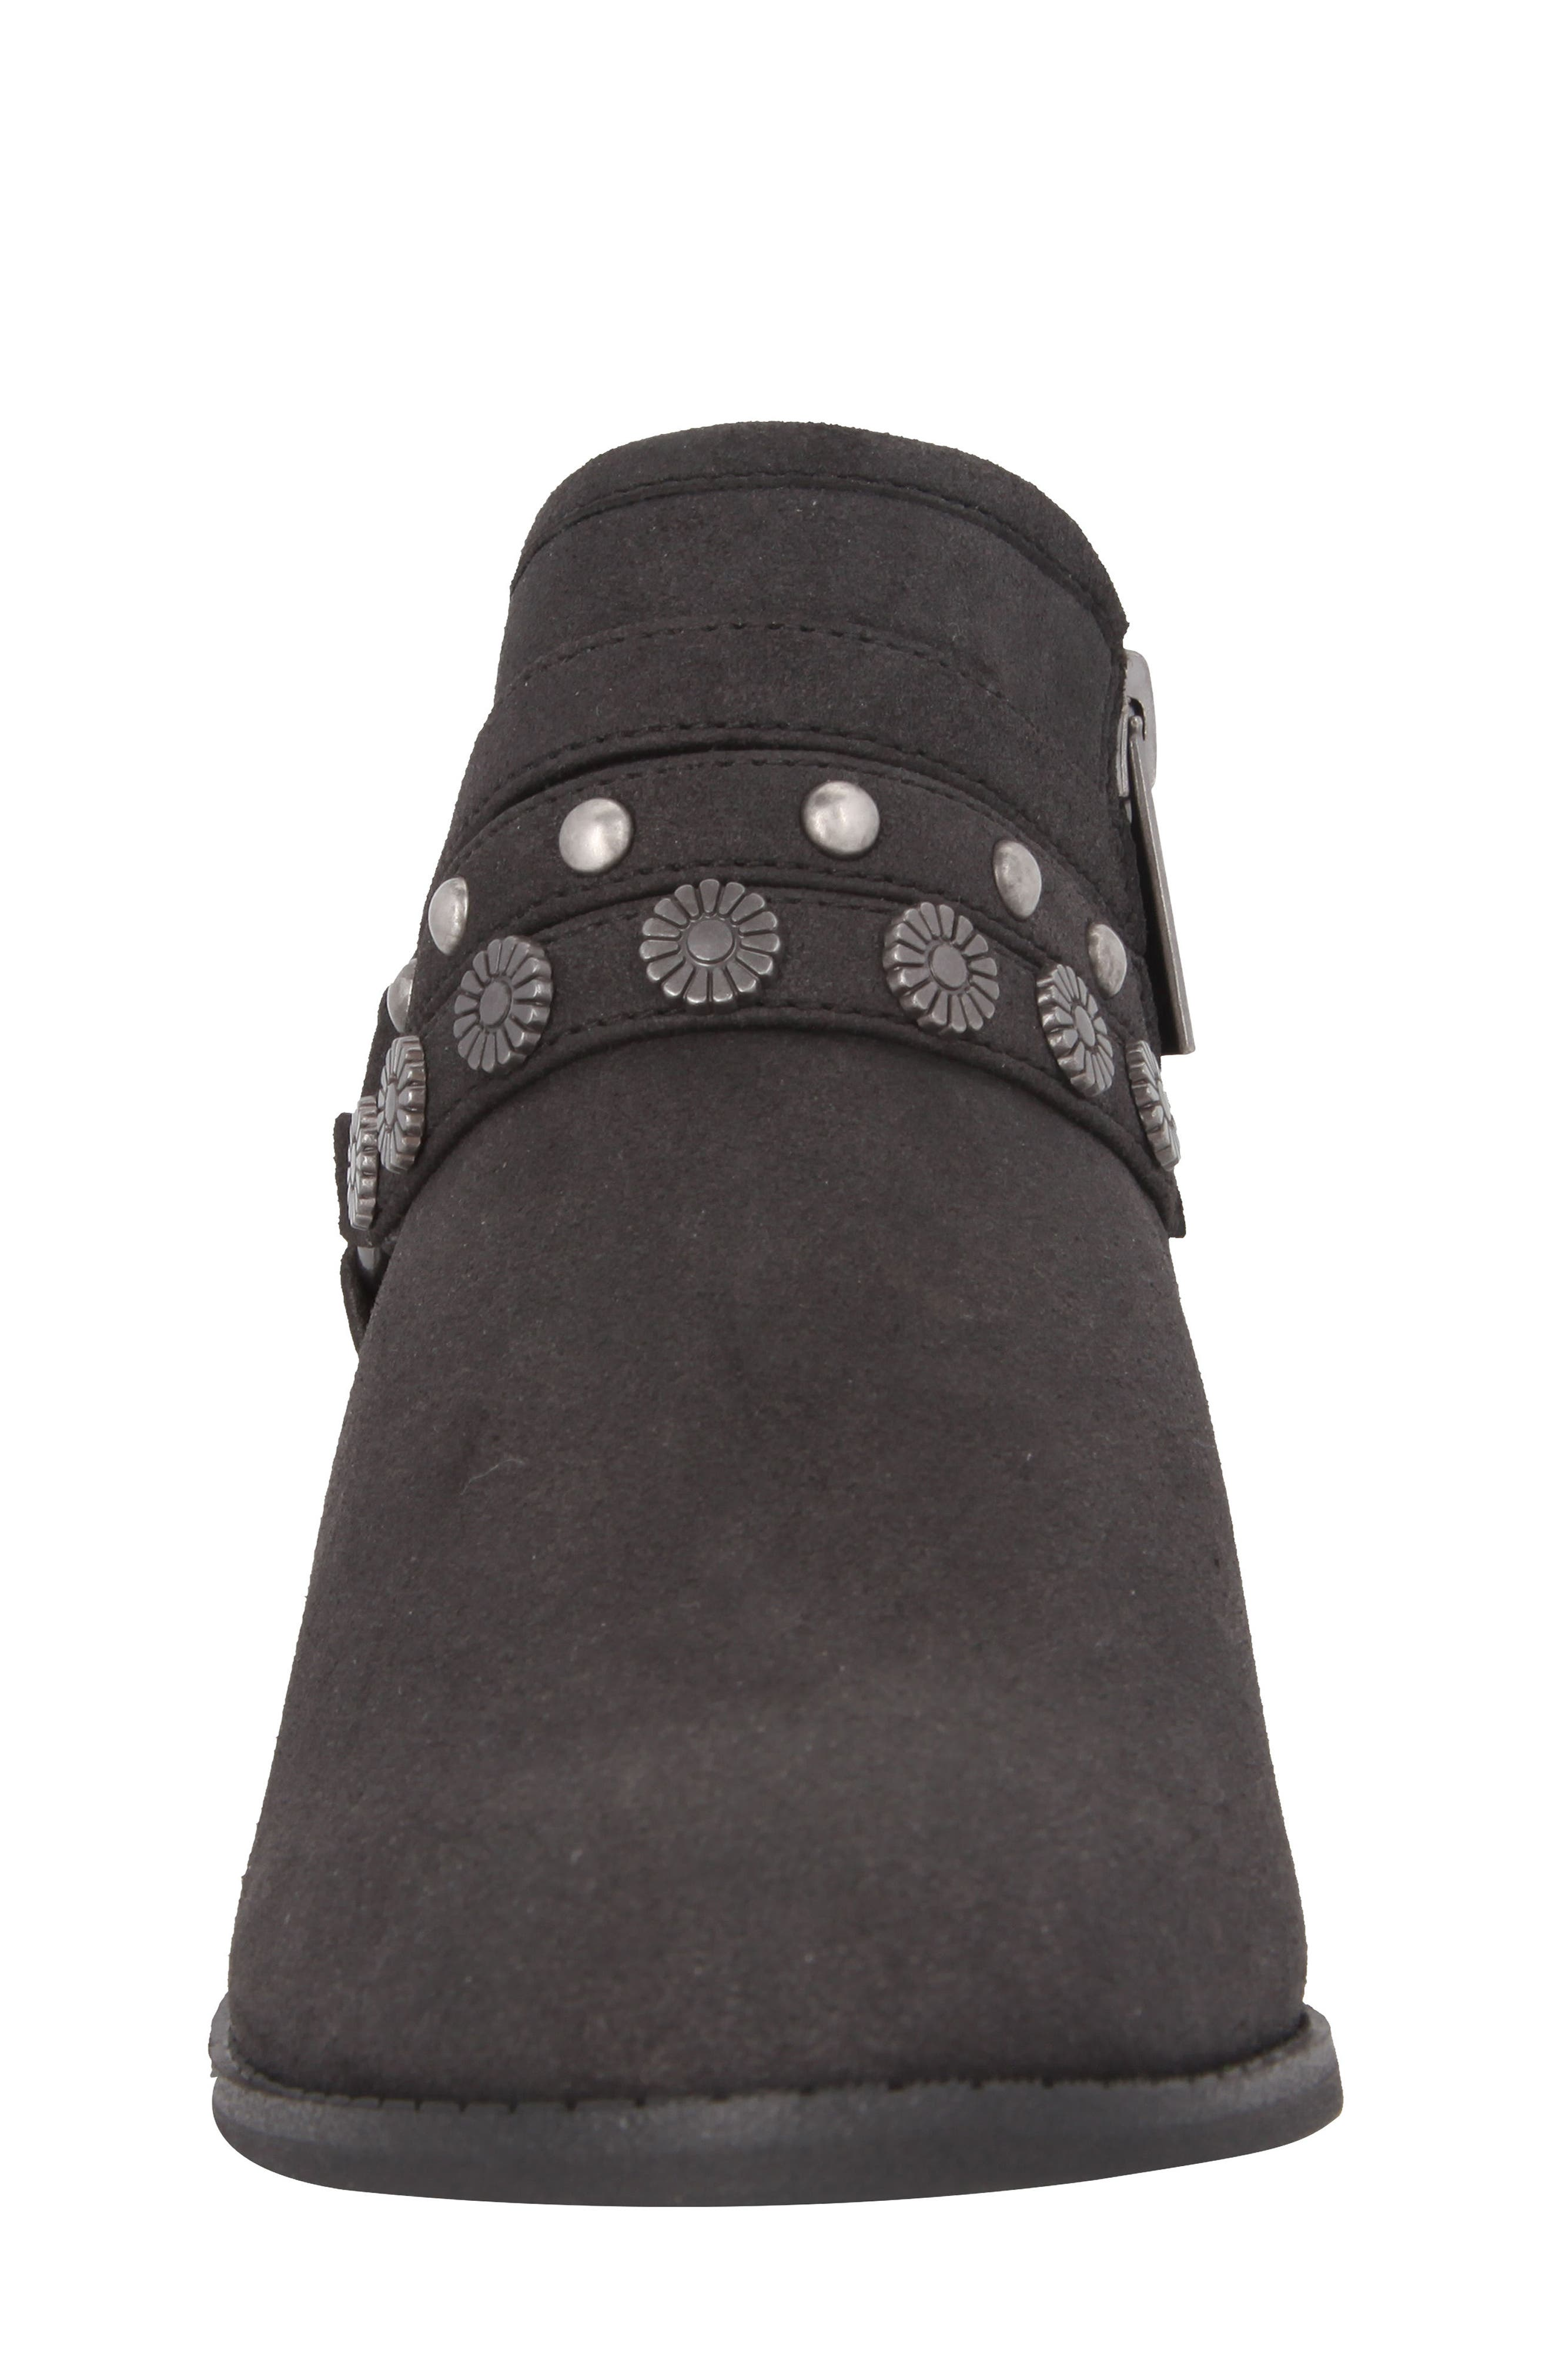 Zoe Strappy Low Bootie,                             Alternate thumbnail 4, color,                             003